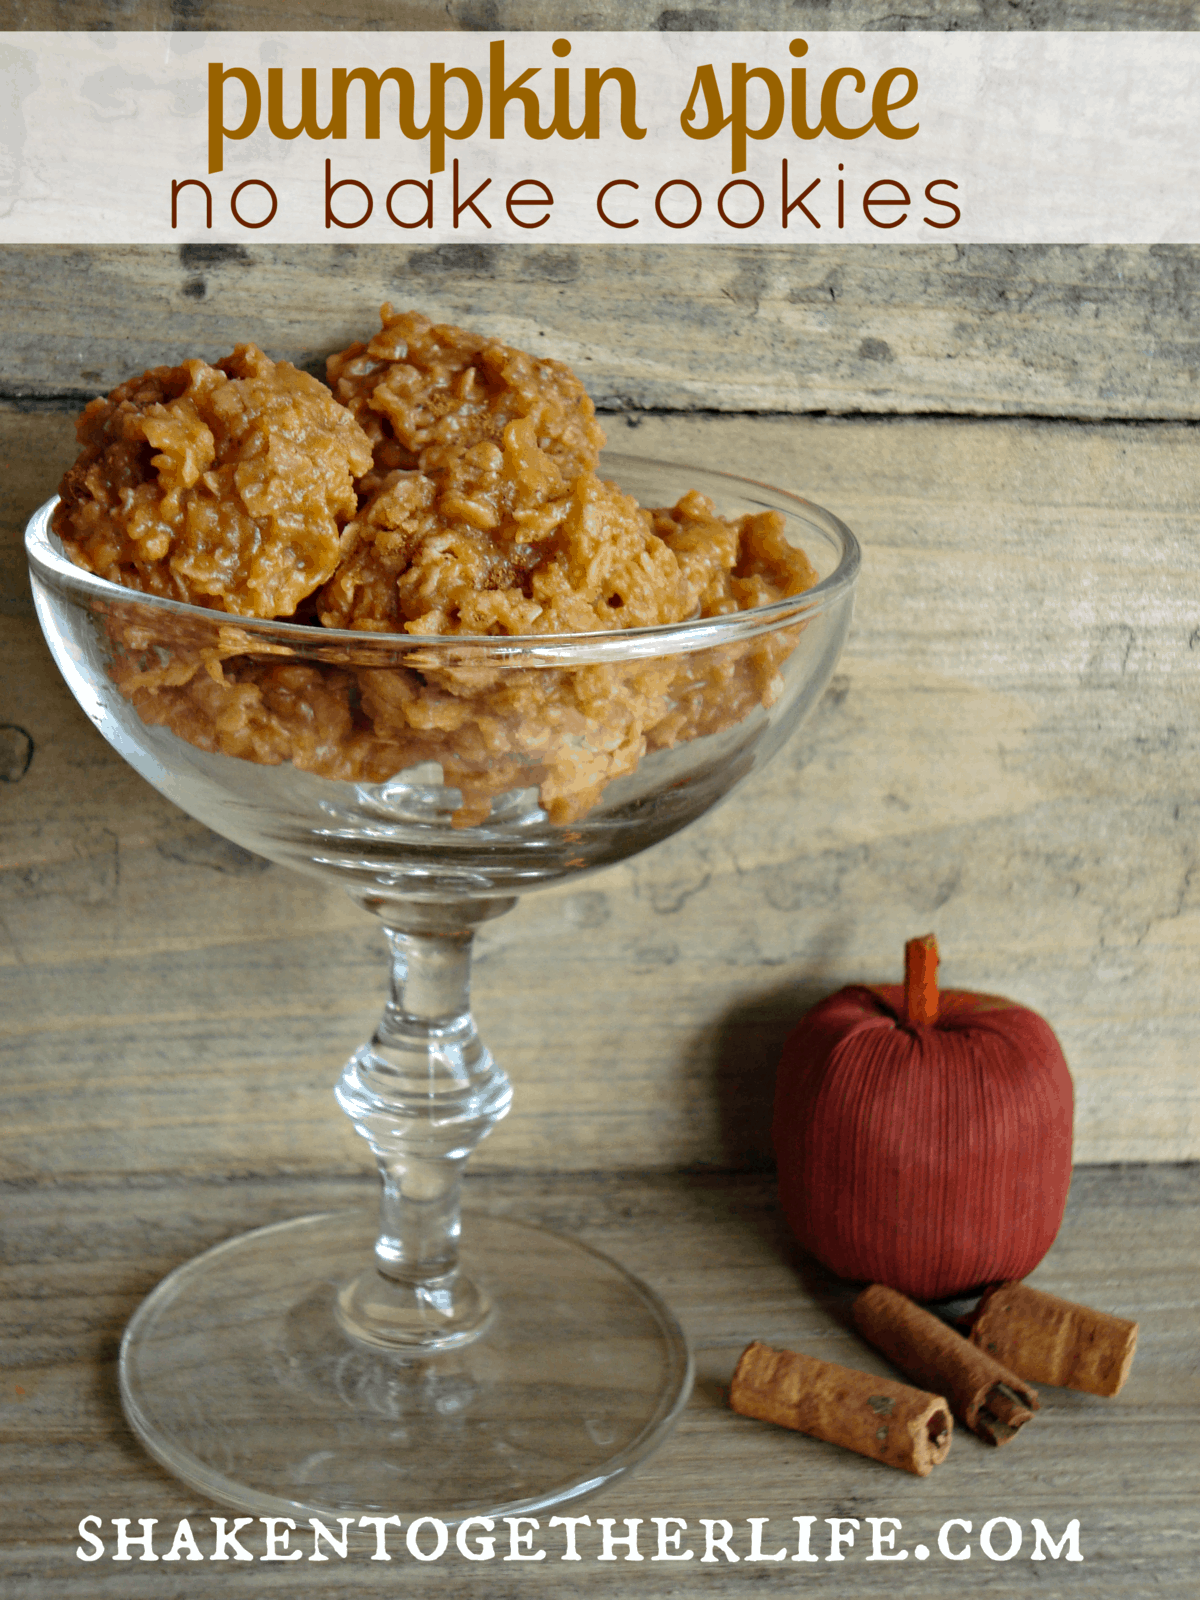 pumpkin spice no bake cookies at shakentogetherlife.com